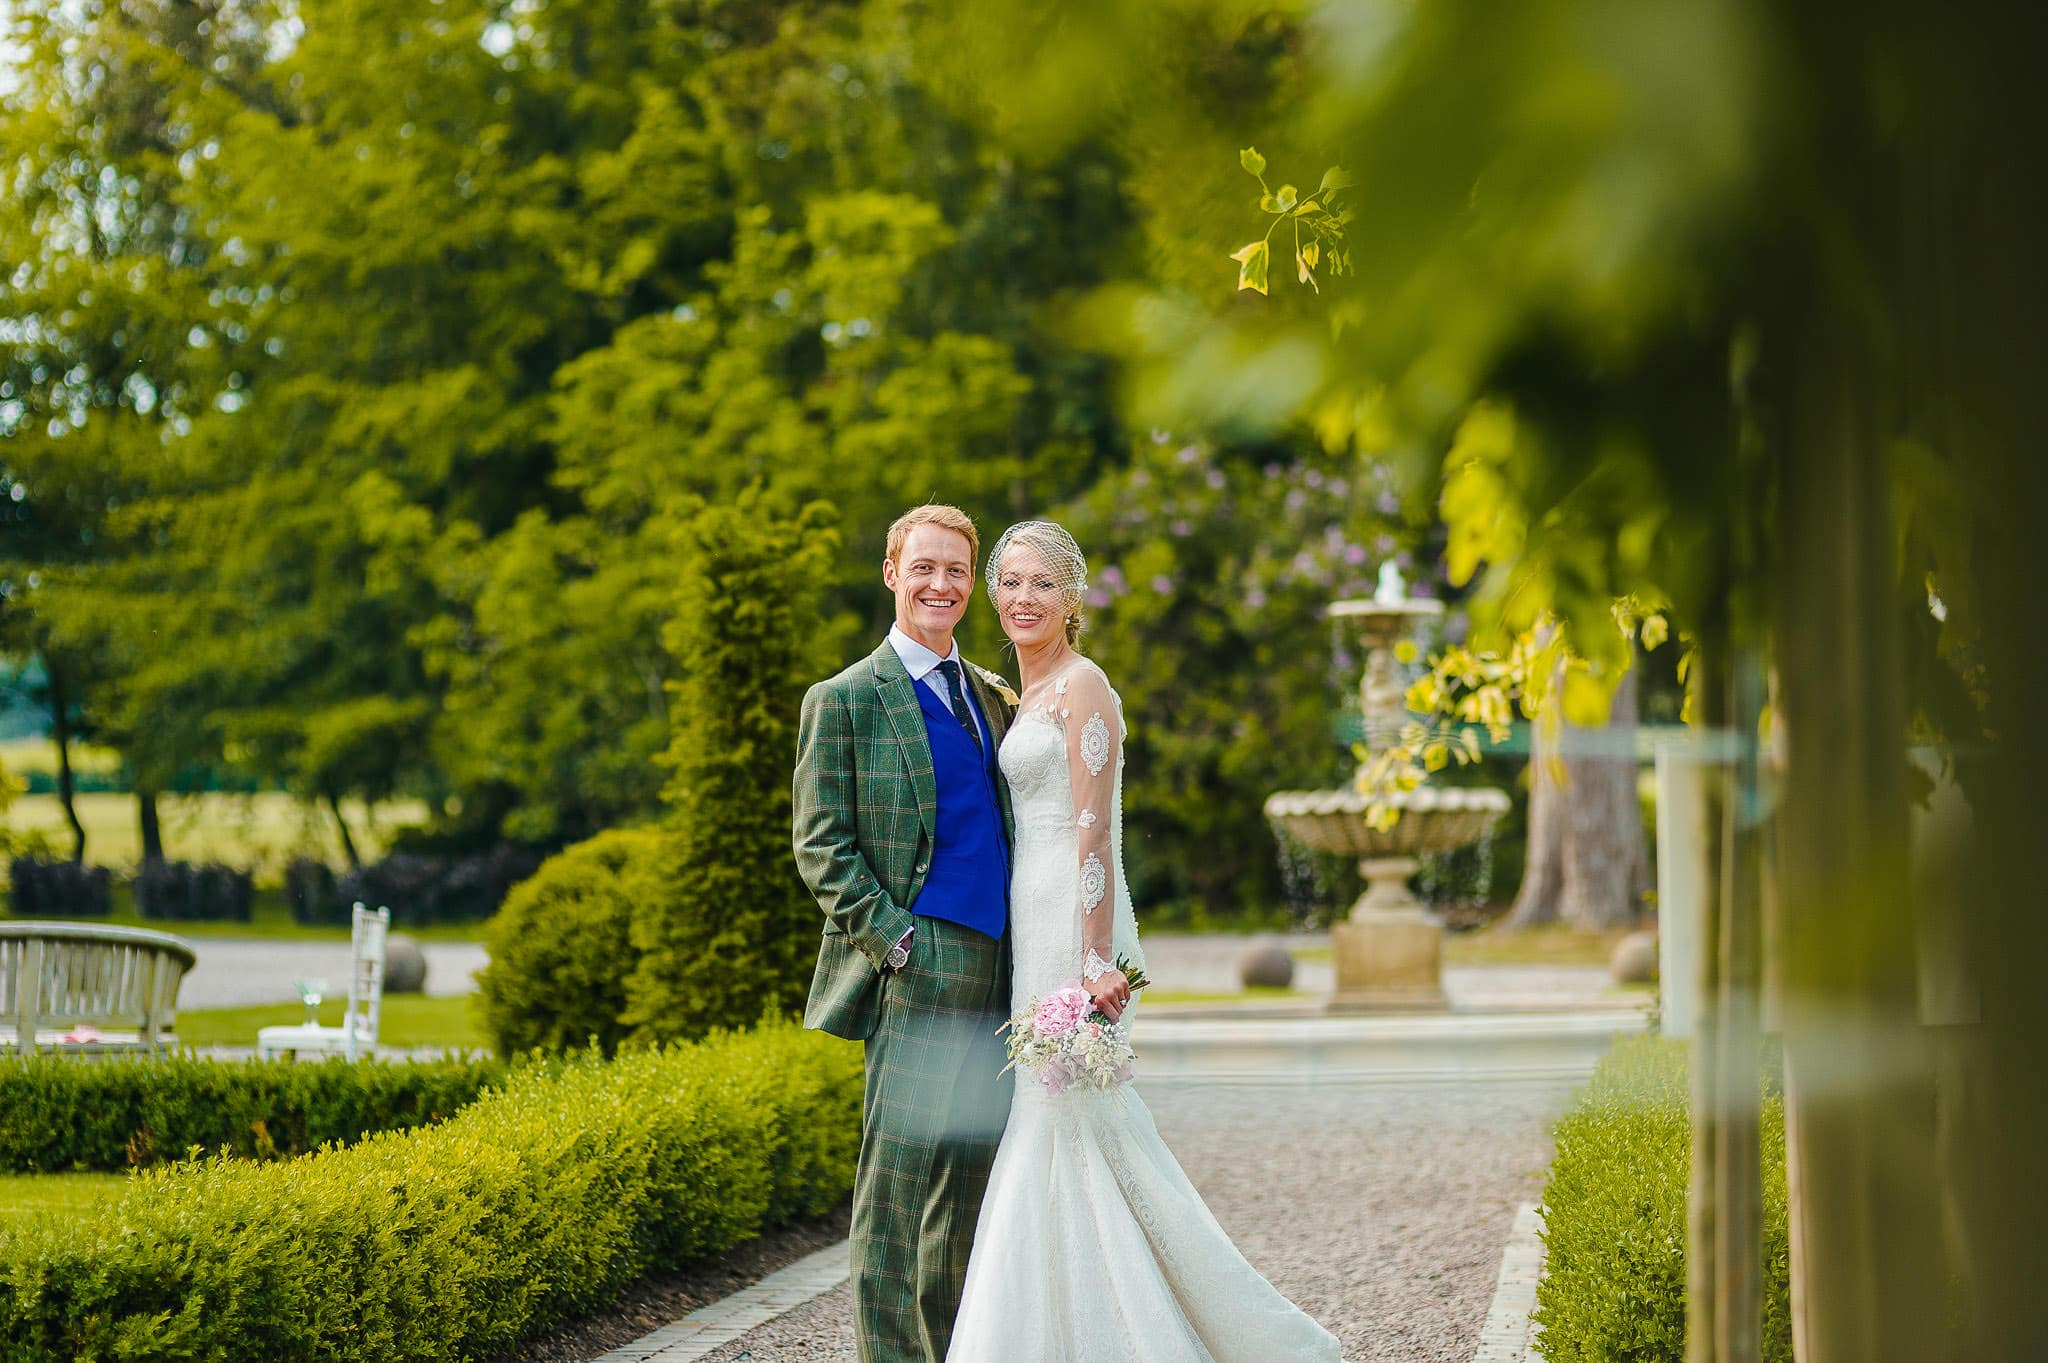 Lemore Manor Wedding Photographer | Hannah and Angus 56